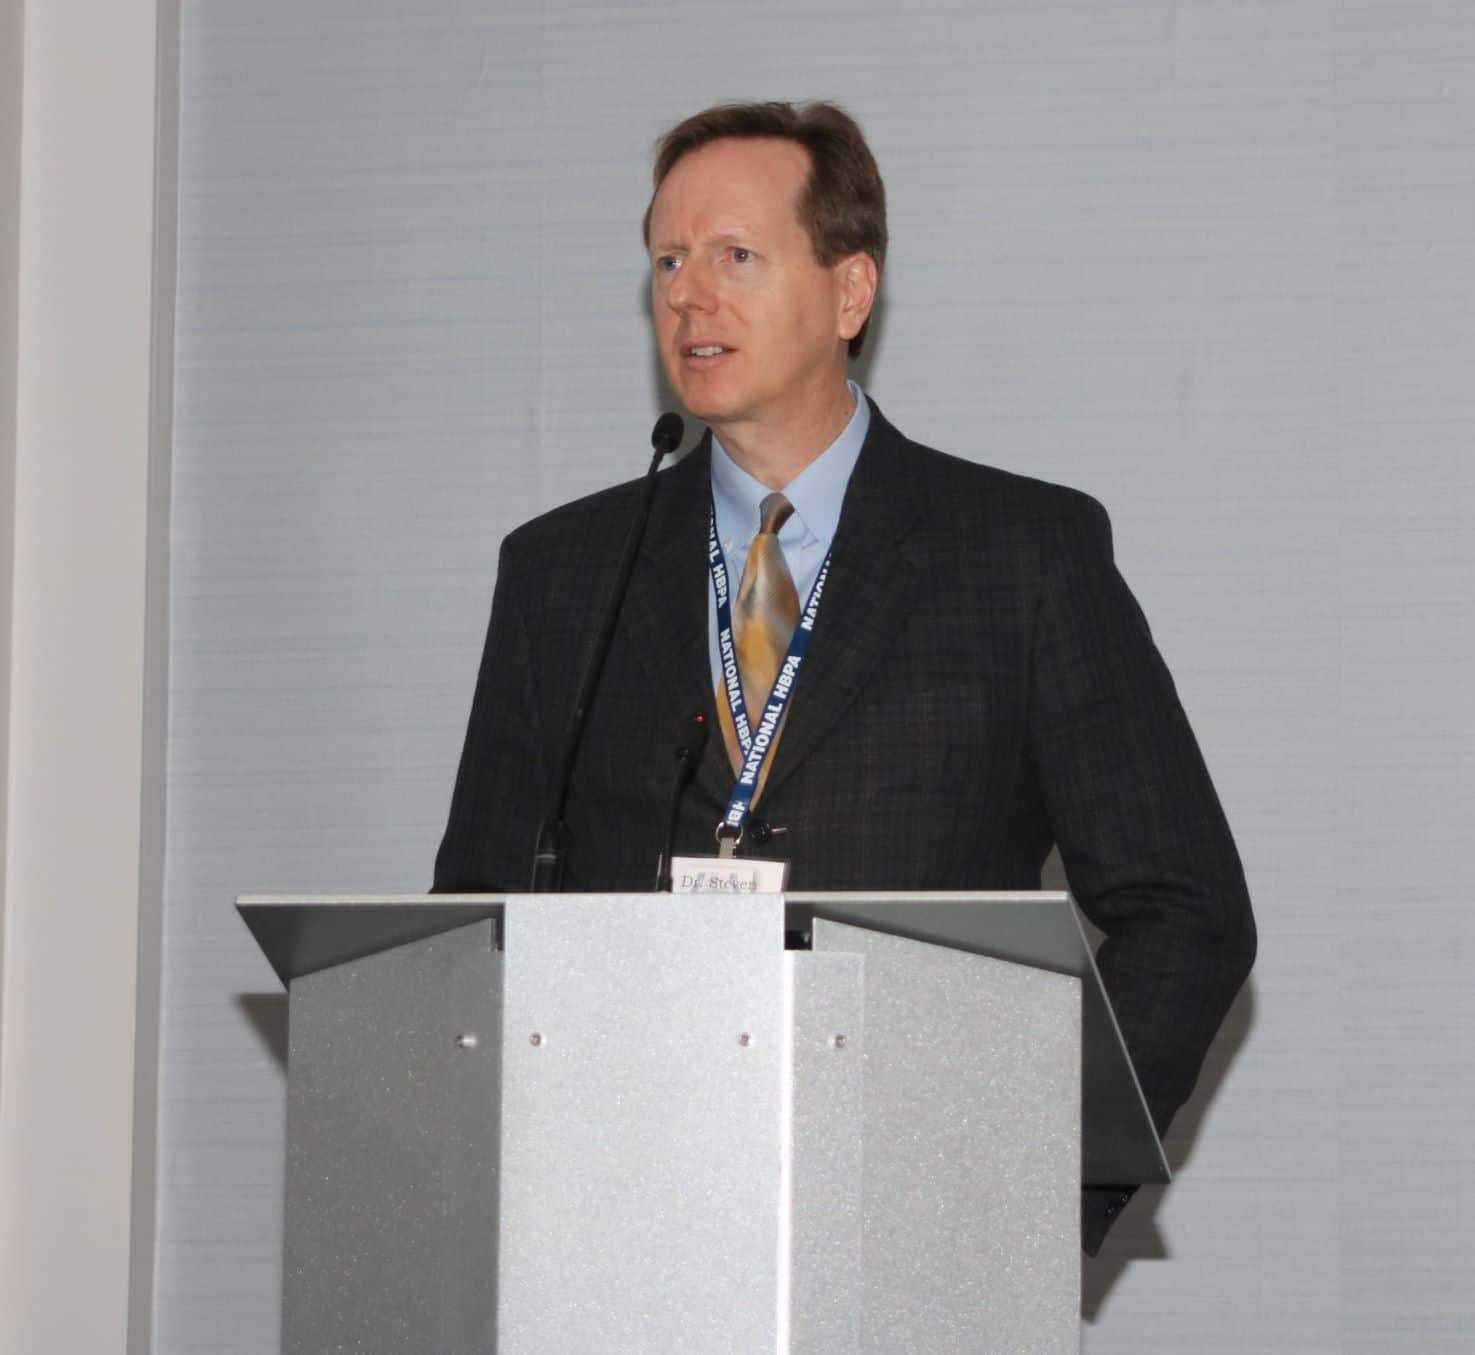 National HBPA Convention - Louisville economist: Have data, will